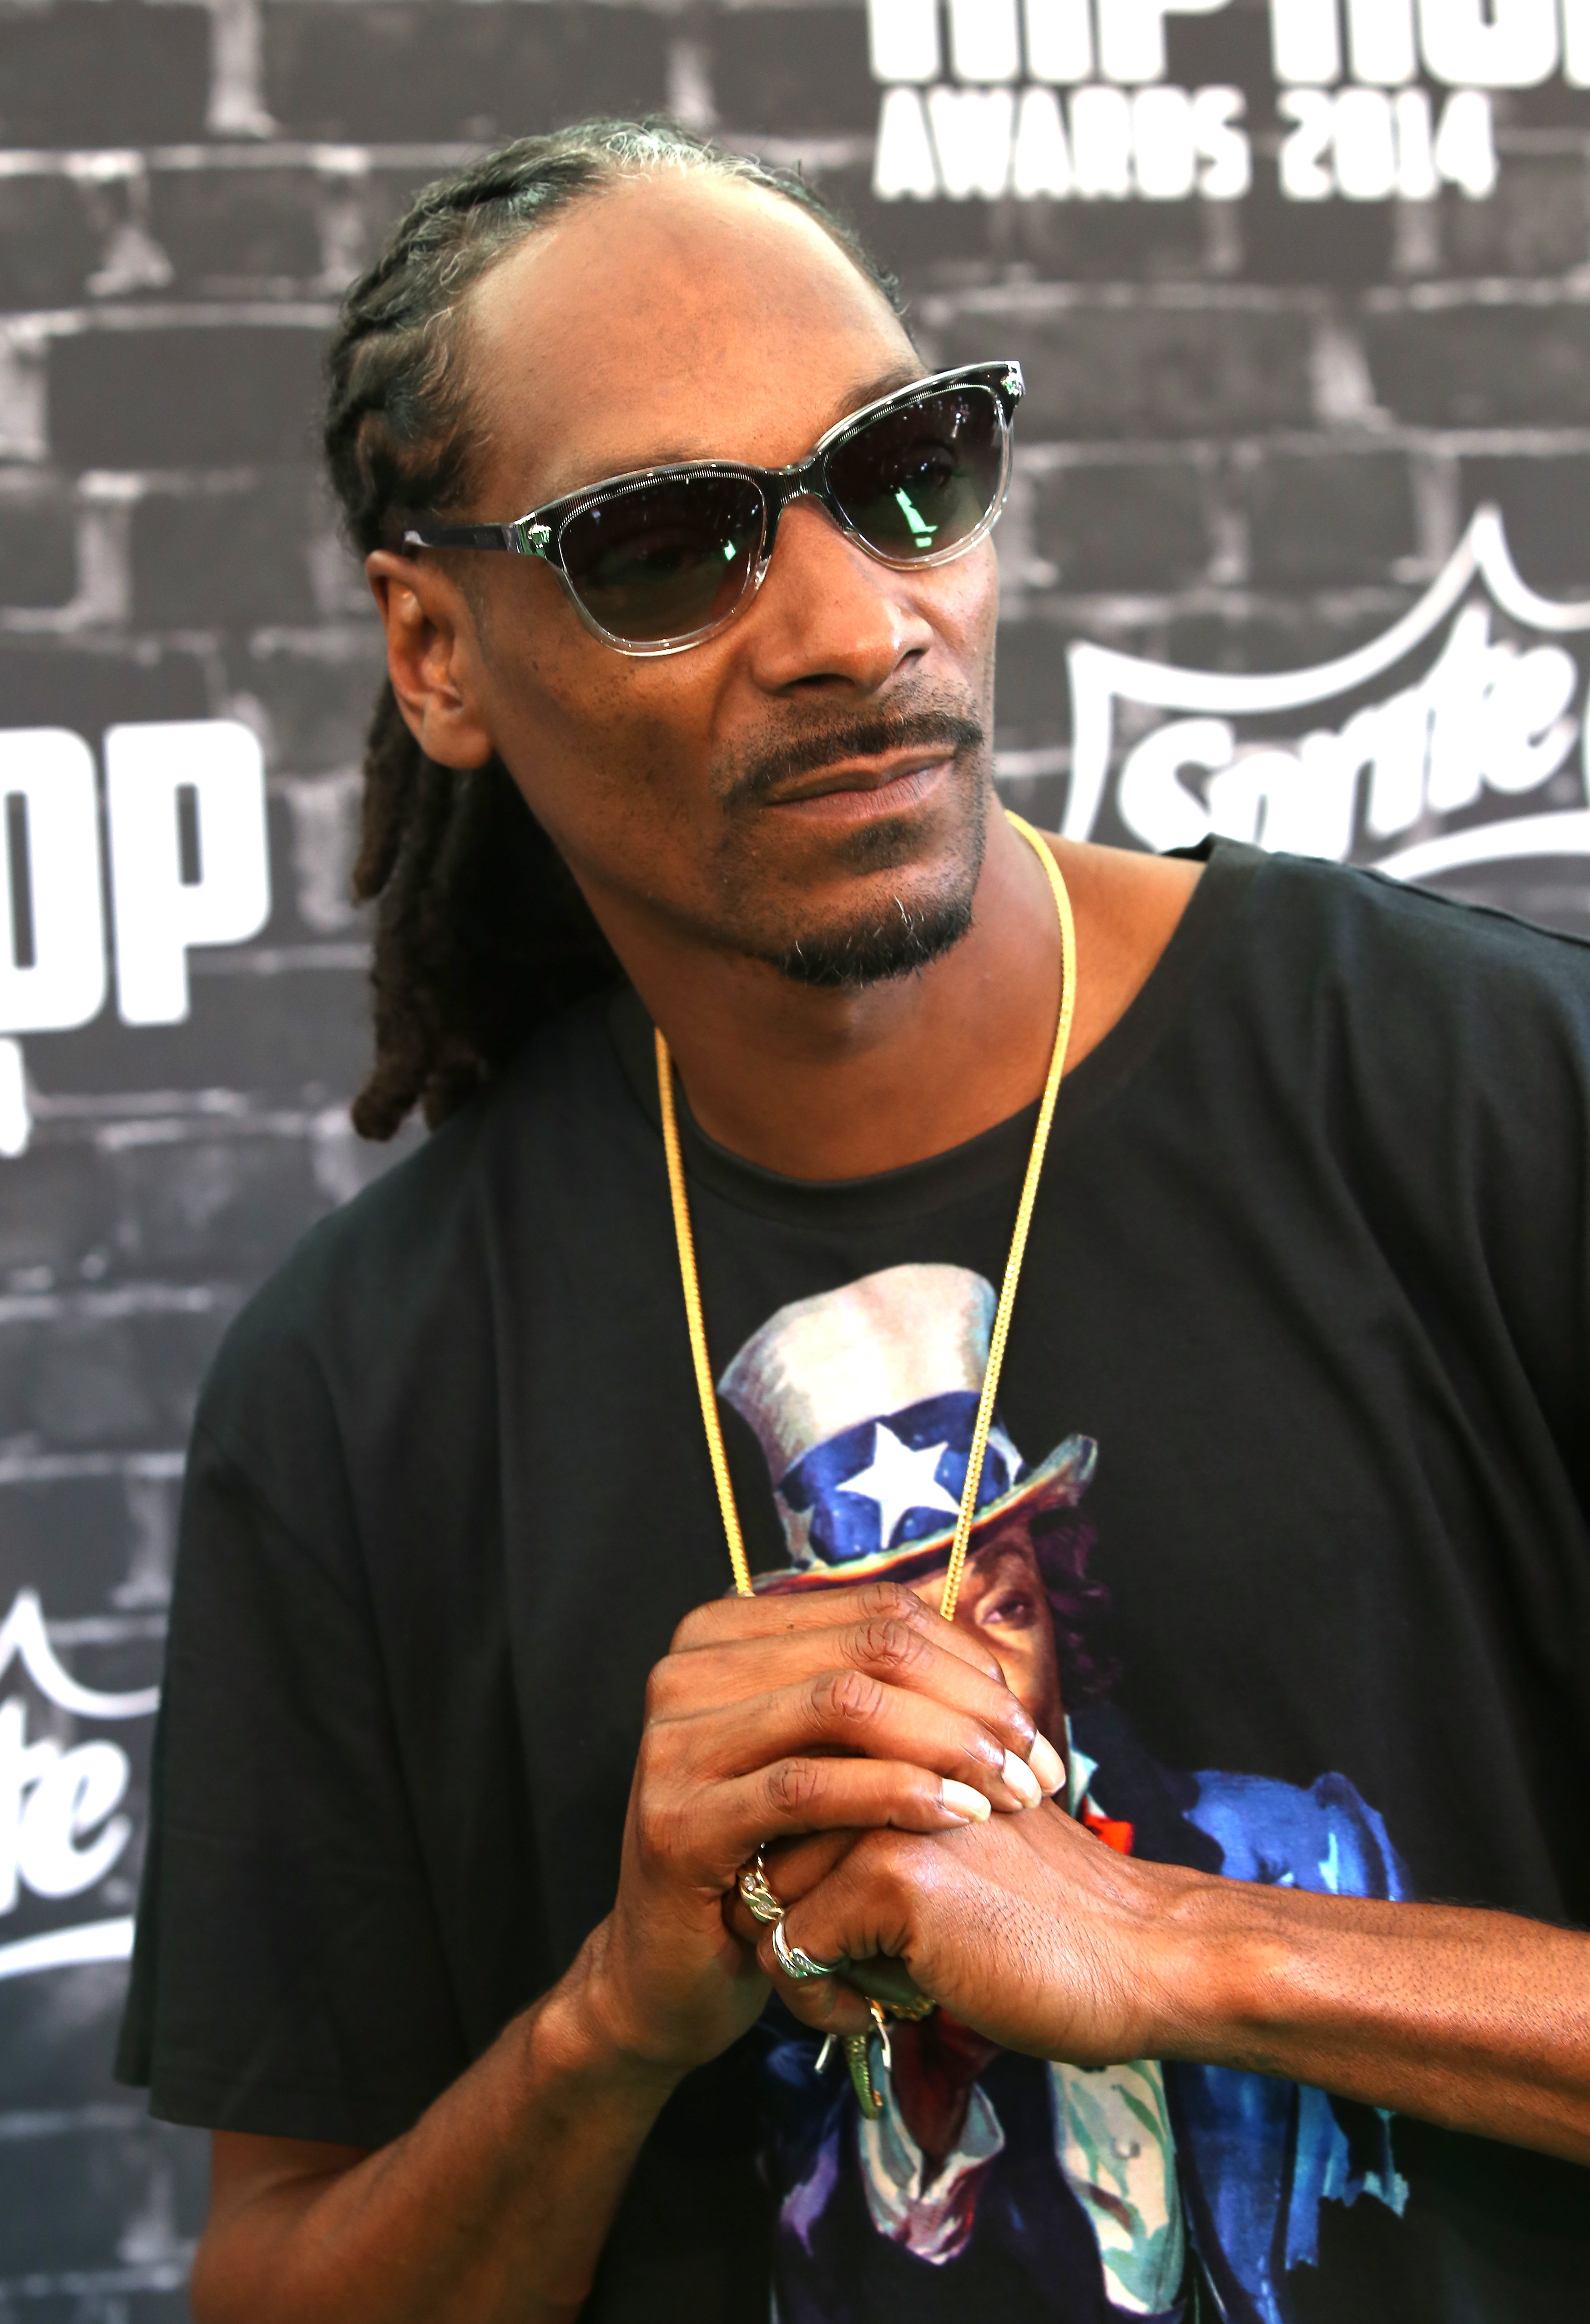 Snoop Dogg at the 2014 BET Hip Hop Awards red carpet. September 20, 2014| Photo: Getty Images